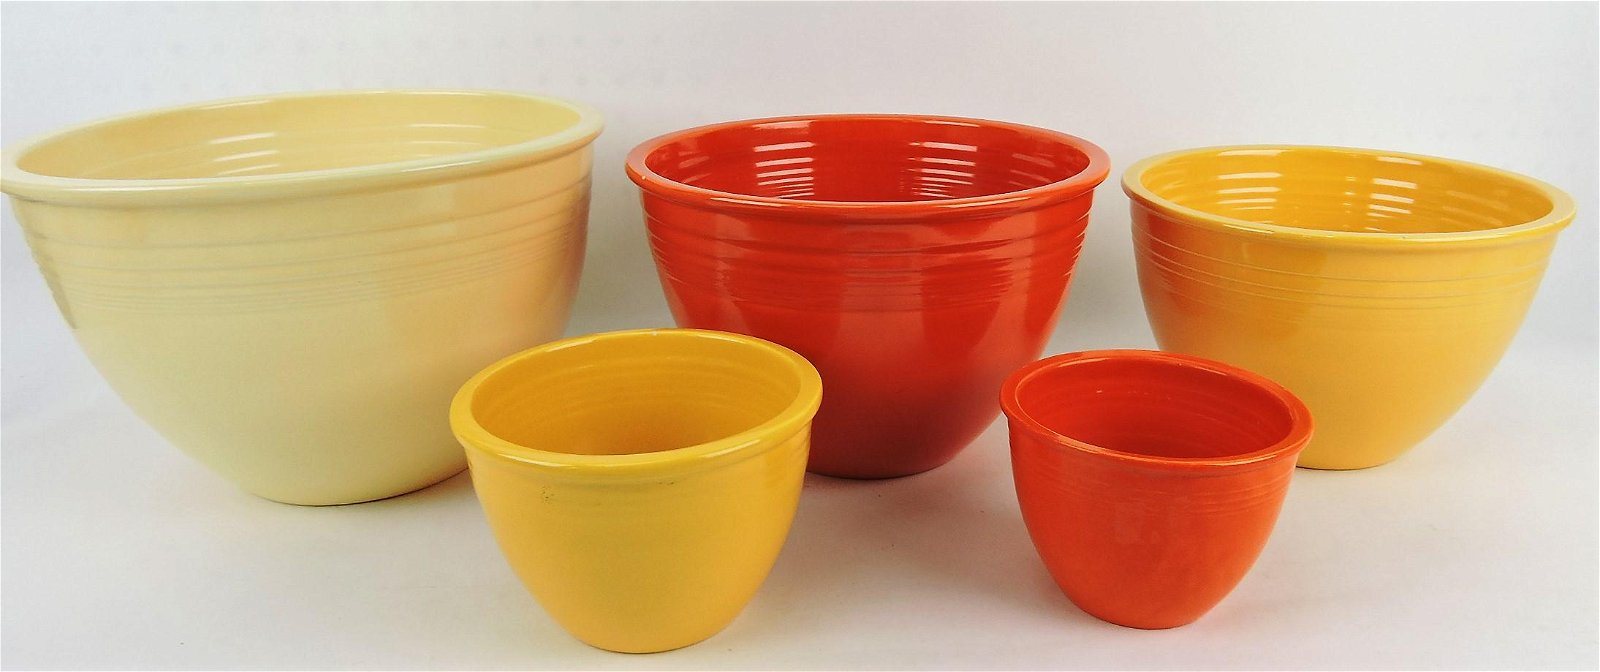 Fiesta mixing bowl group of 5,